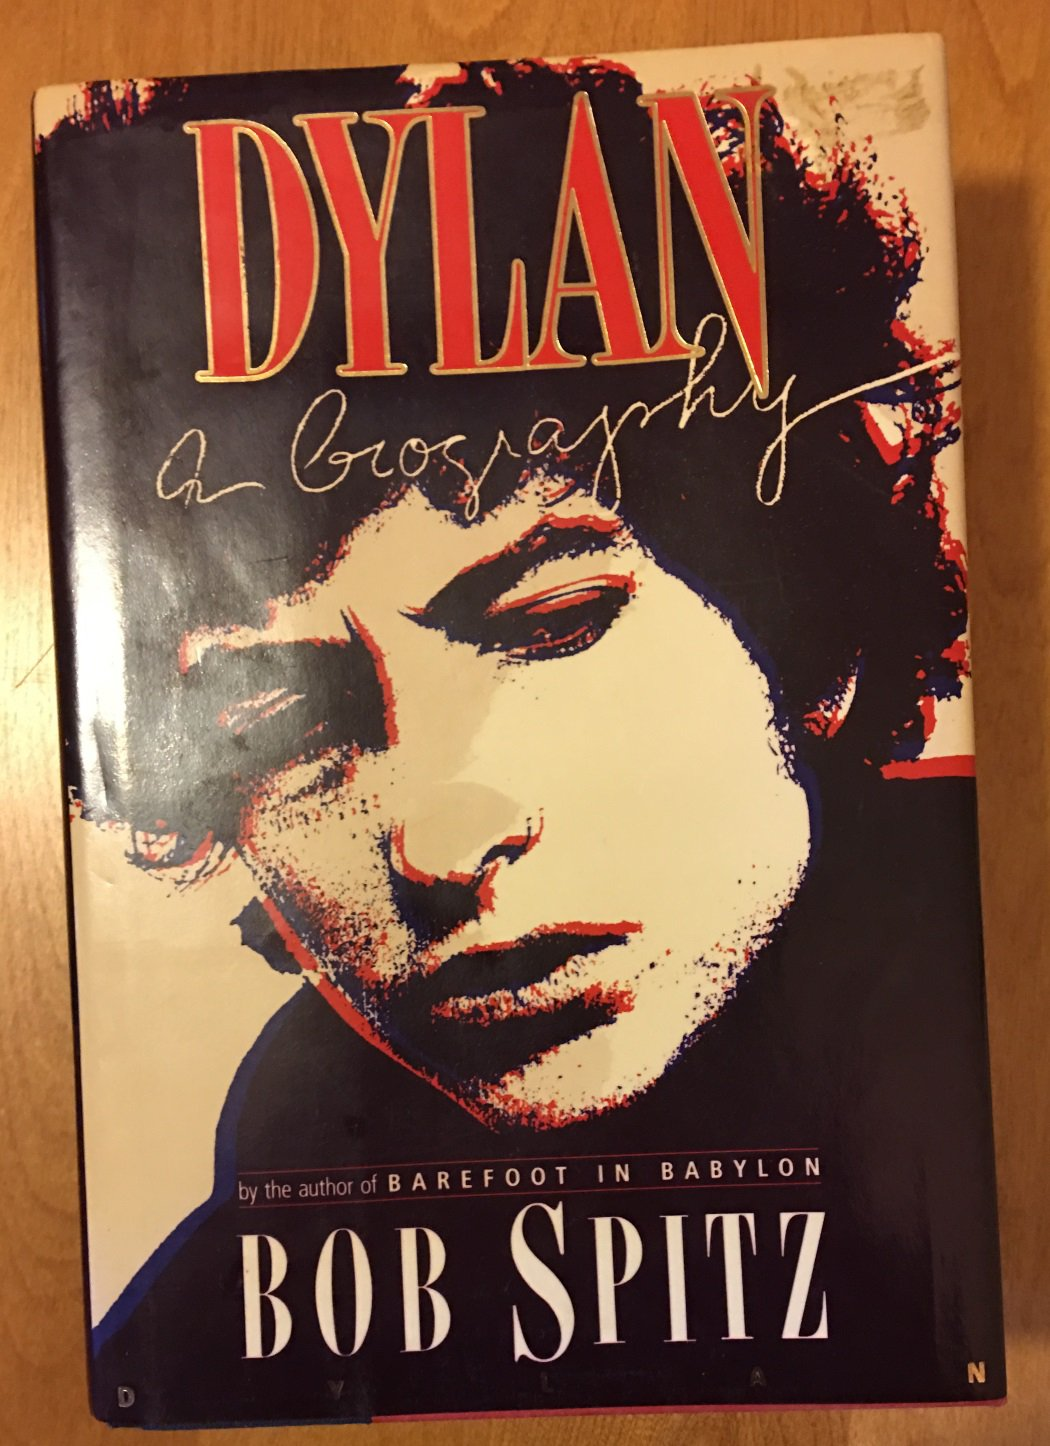 Dylan A Biography by Bob Spitz